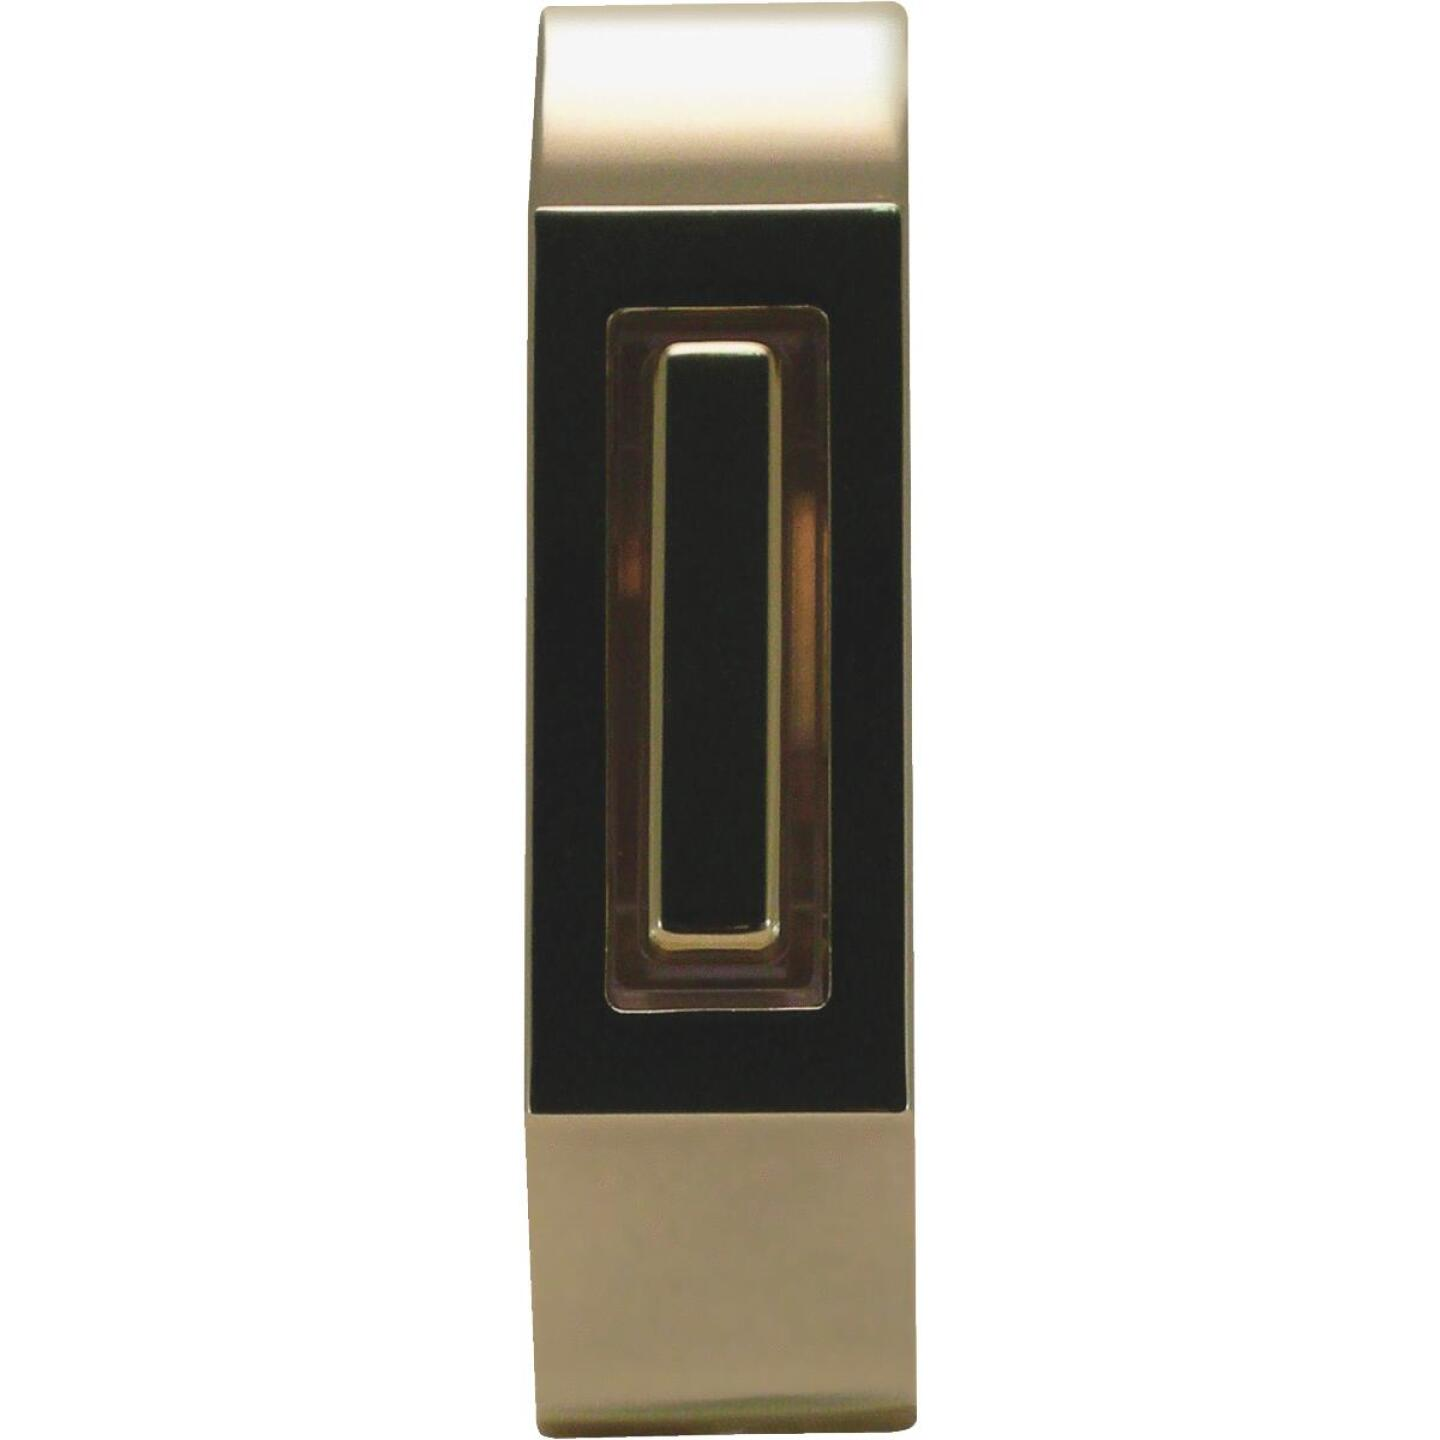 IQ America Wired Polished Brass & Brown Lighted Doorbell Button Image 1